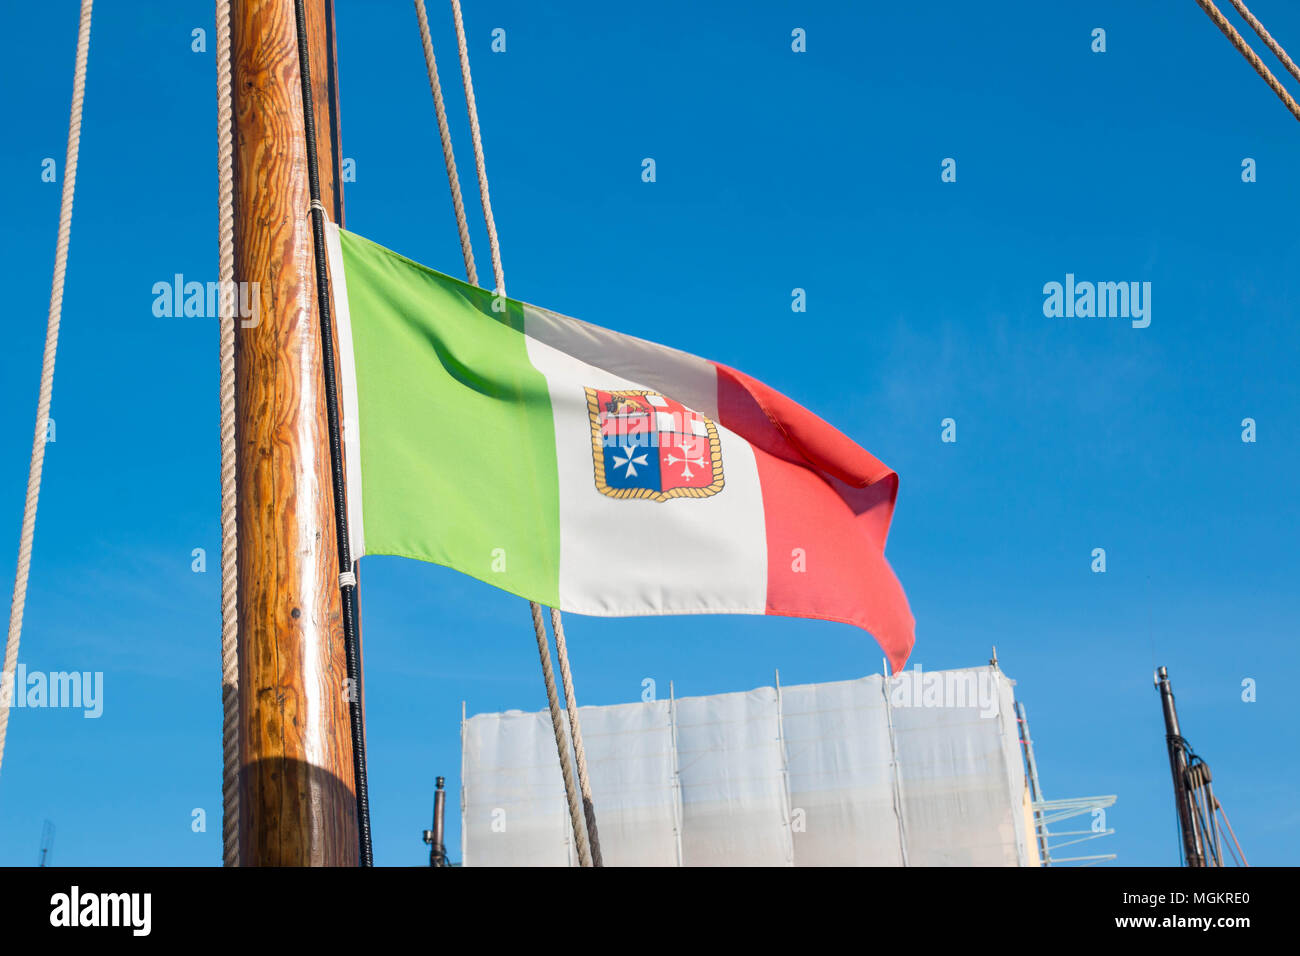 The italian army flag on a wooden boat flagpole on a sunny day in cesenatico. - Stock Image